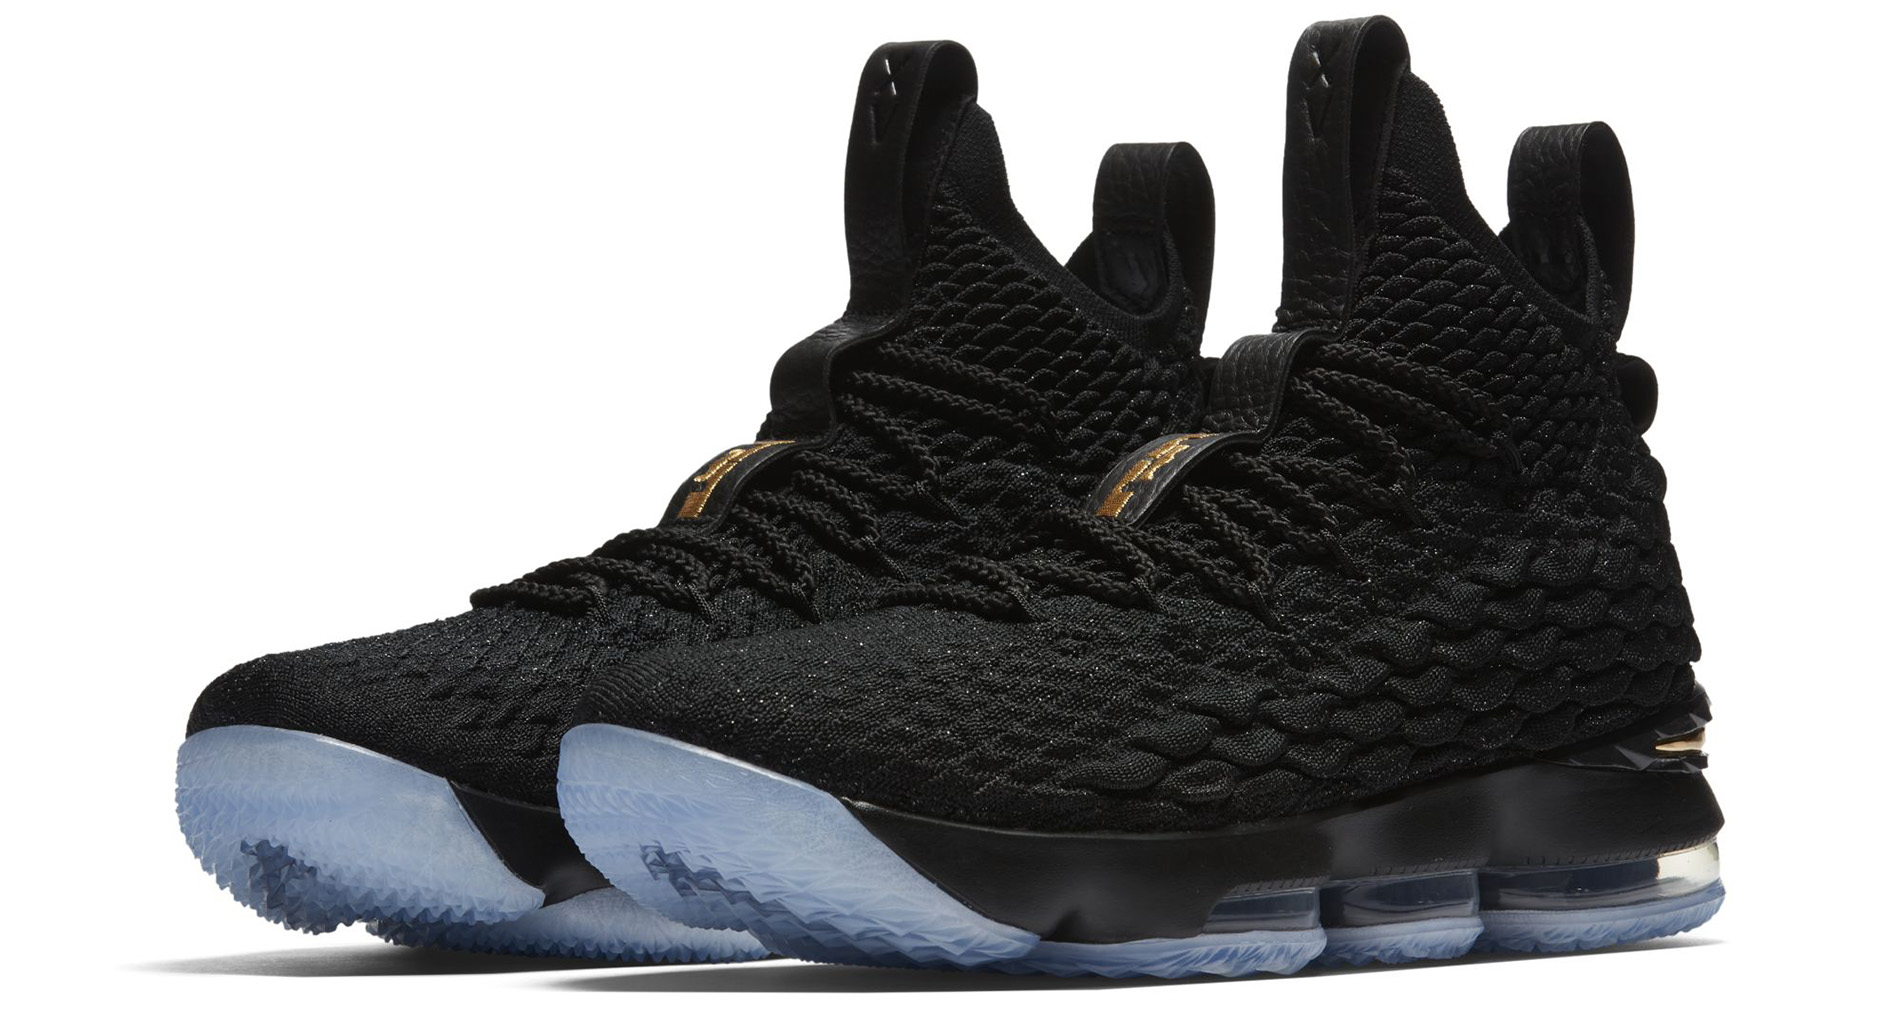 715e744d496 Nike LeBron 15 Black Gold is Releasing Soon